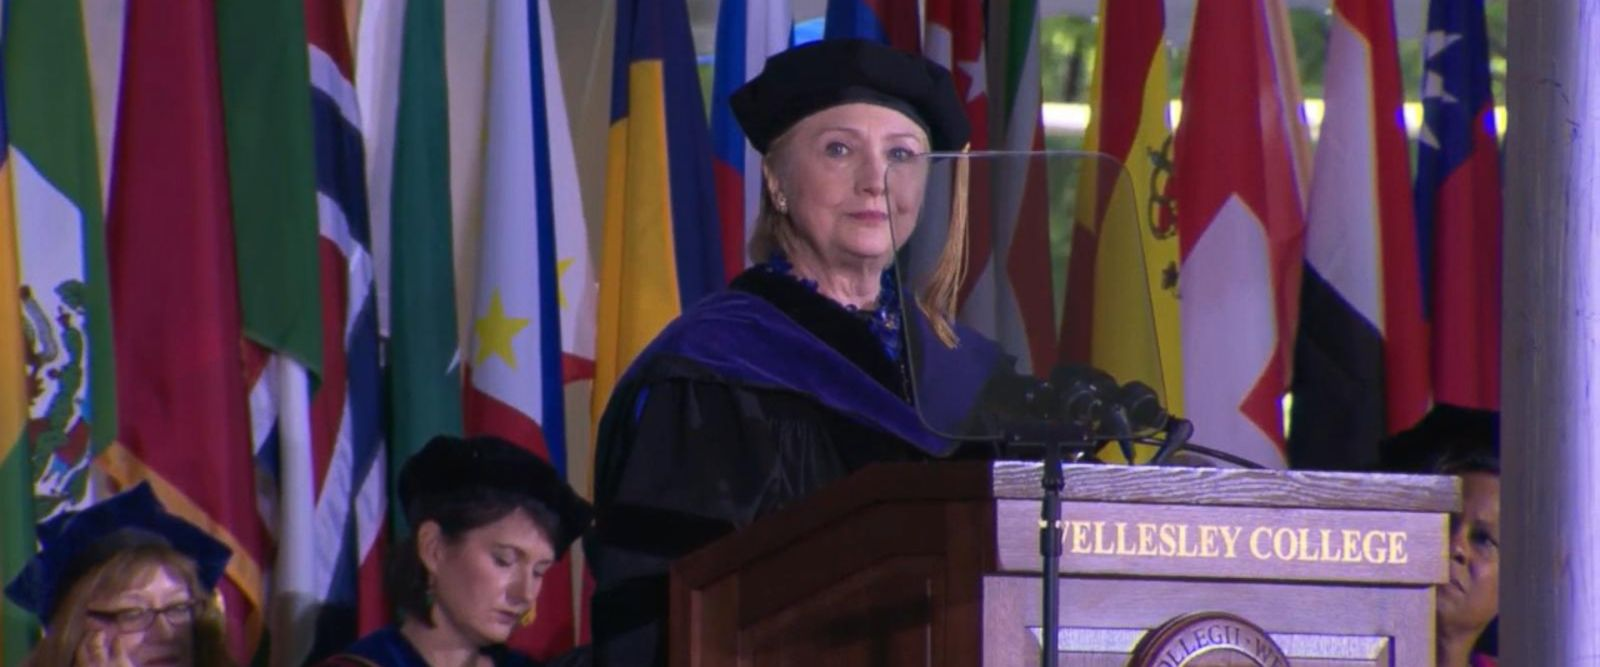 During a commencement speech at Wellesley College, Hillary Clinton did not hold back from taking swipes at Donald Trump.